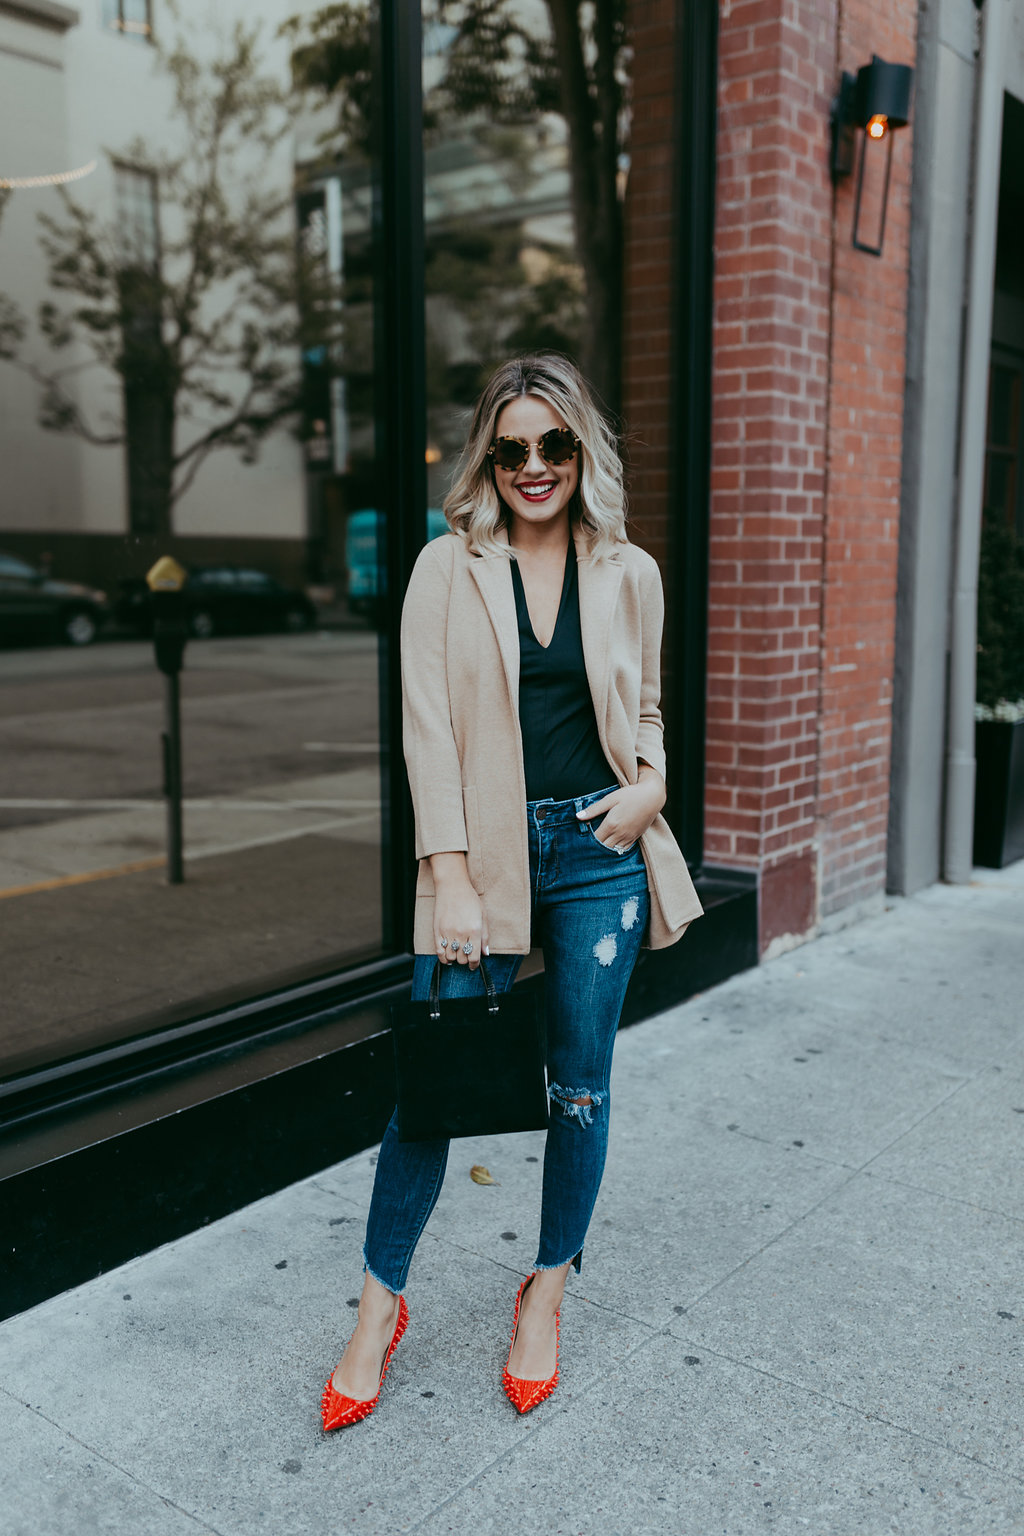 Looking for ideas on How To Wear A Blazer? Houston fashion blogger Uptown with Elly Brown wears her blazer with distressed denim